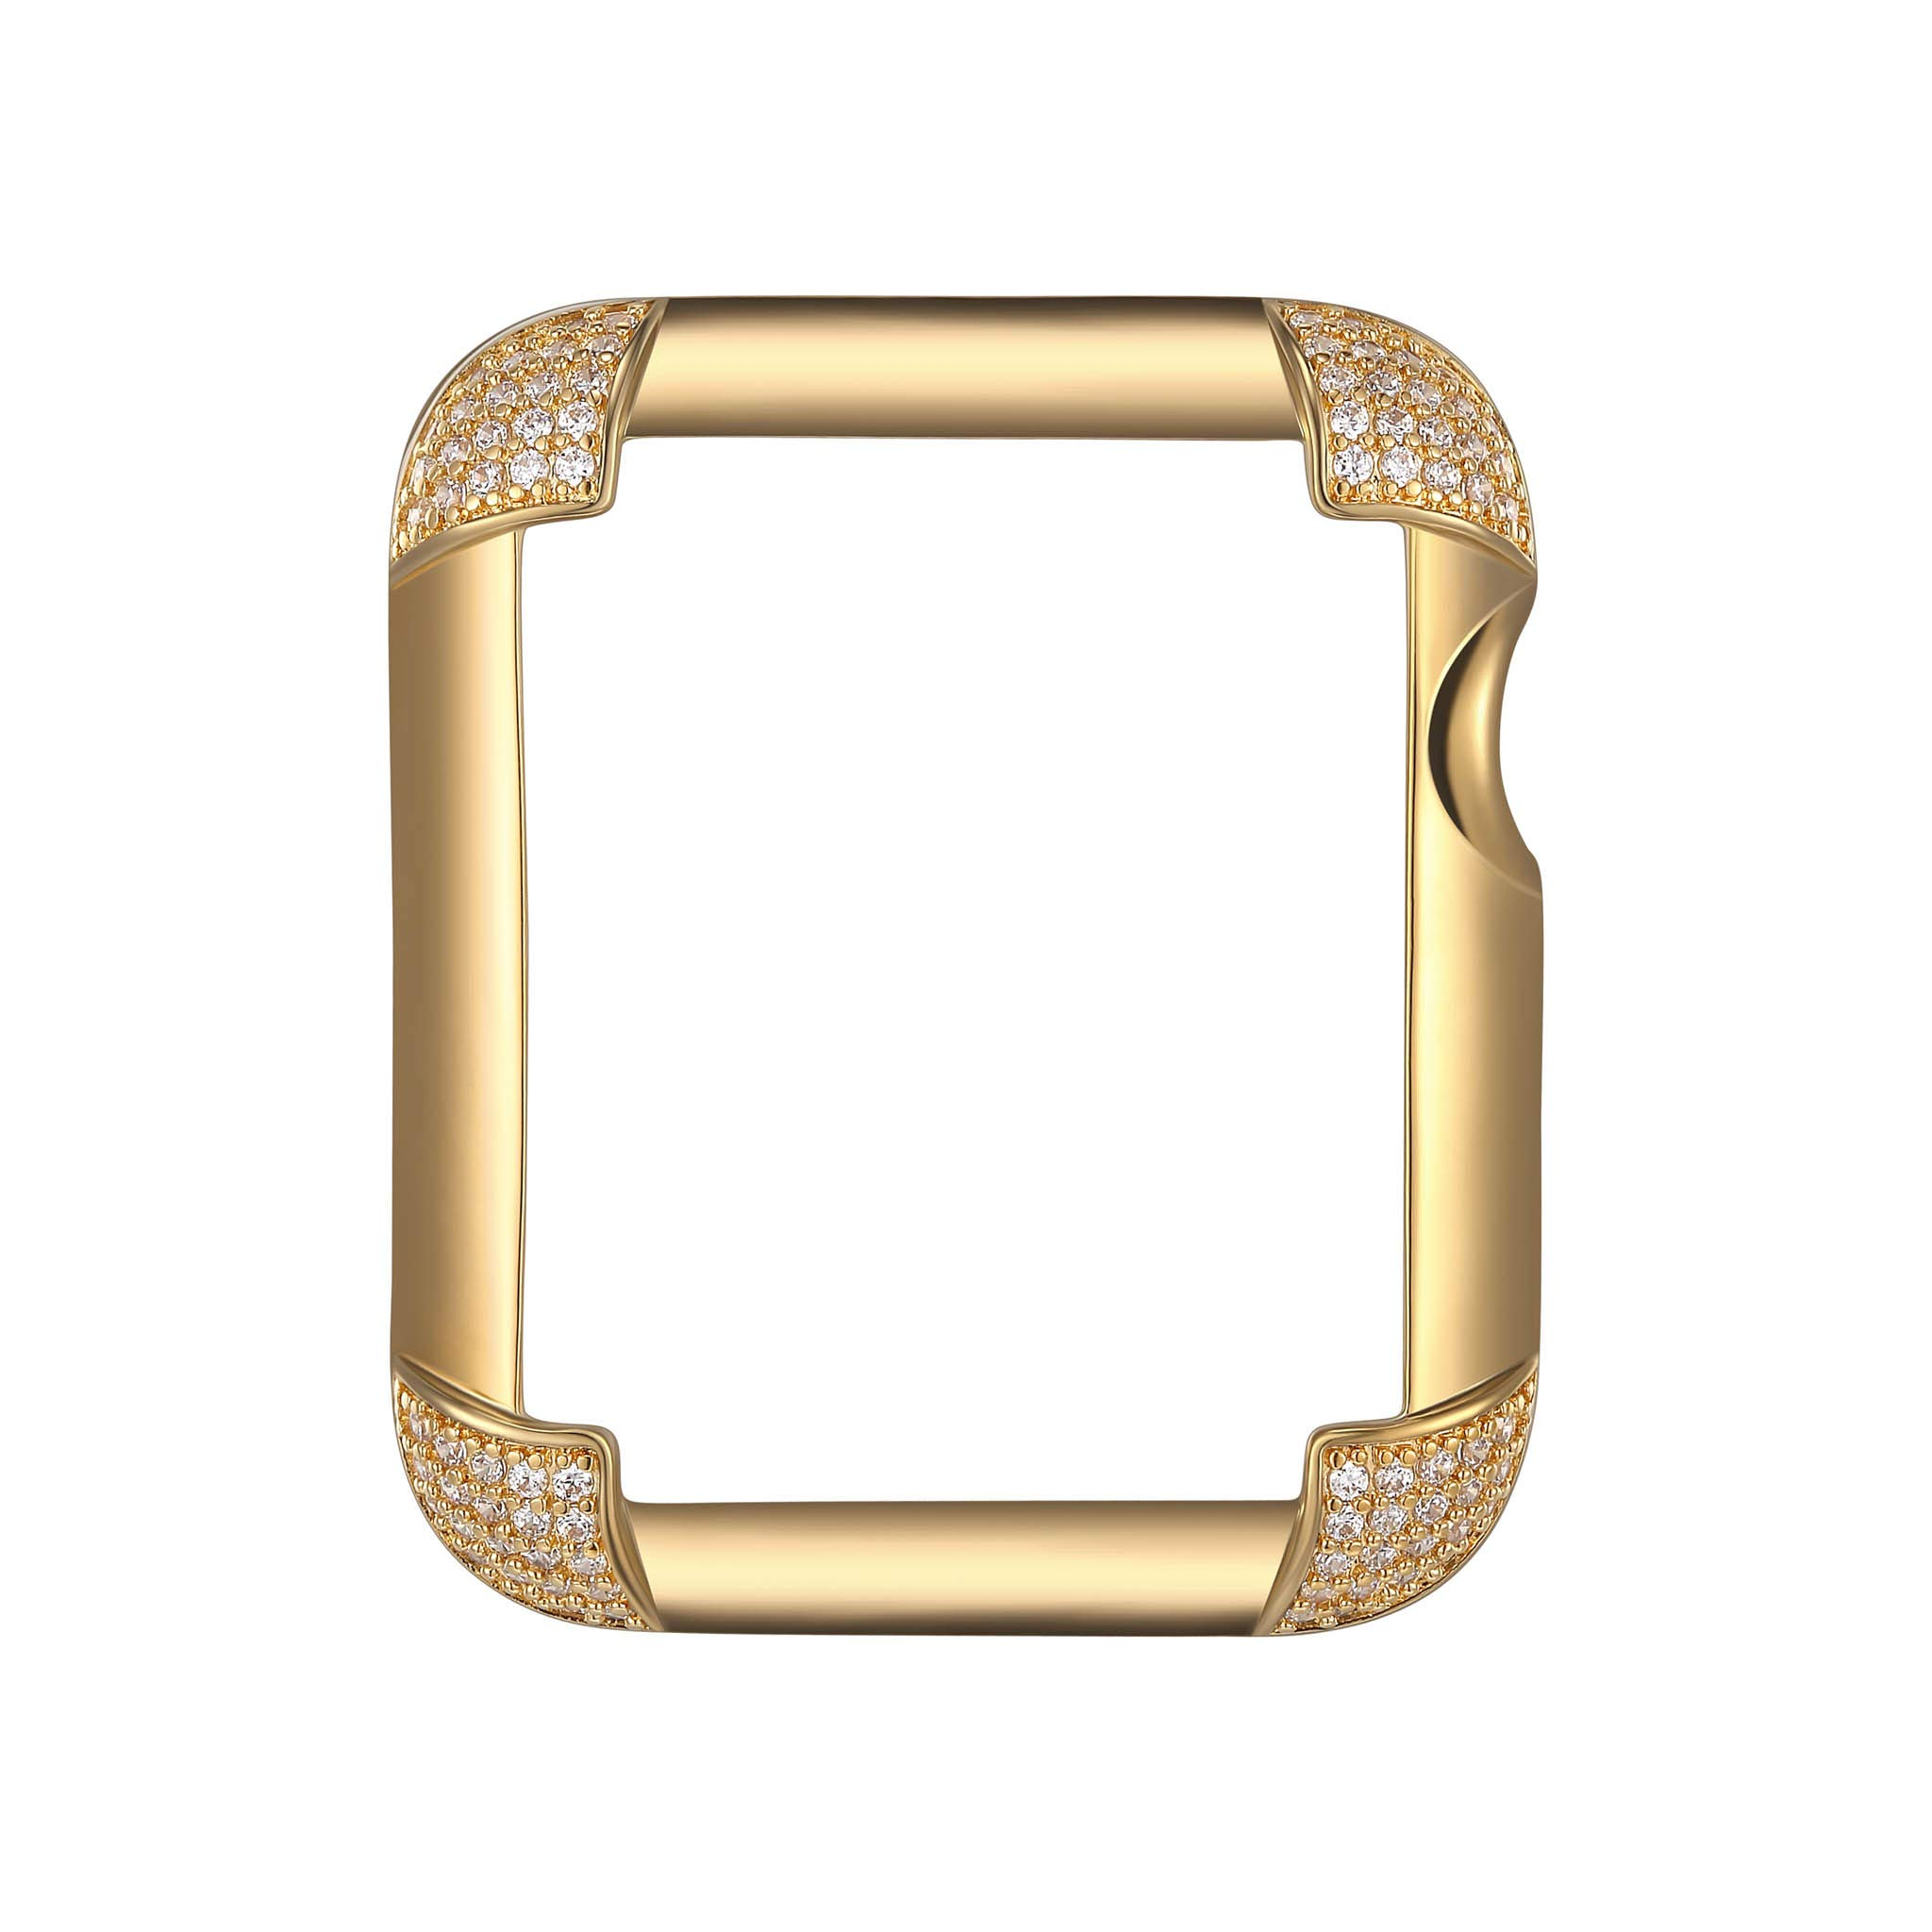 18K Yellow Gold Plated Jewelry-Style Apple Watch Case with Cubic Zirconia CZ Pavé Corners - Small (Fits 38mm iWatch)